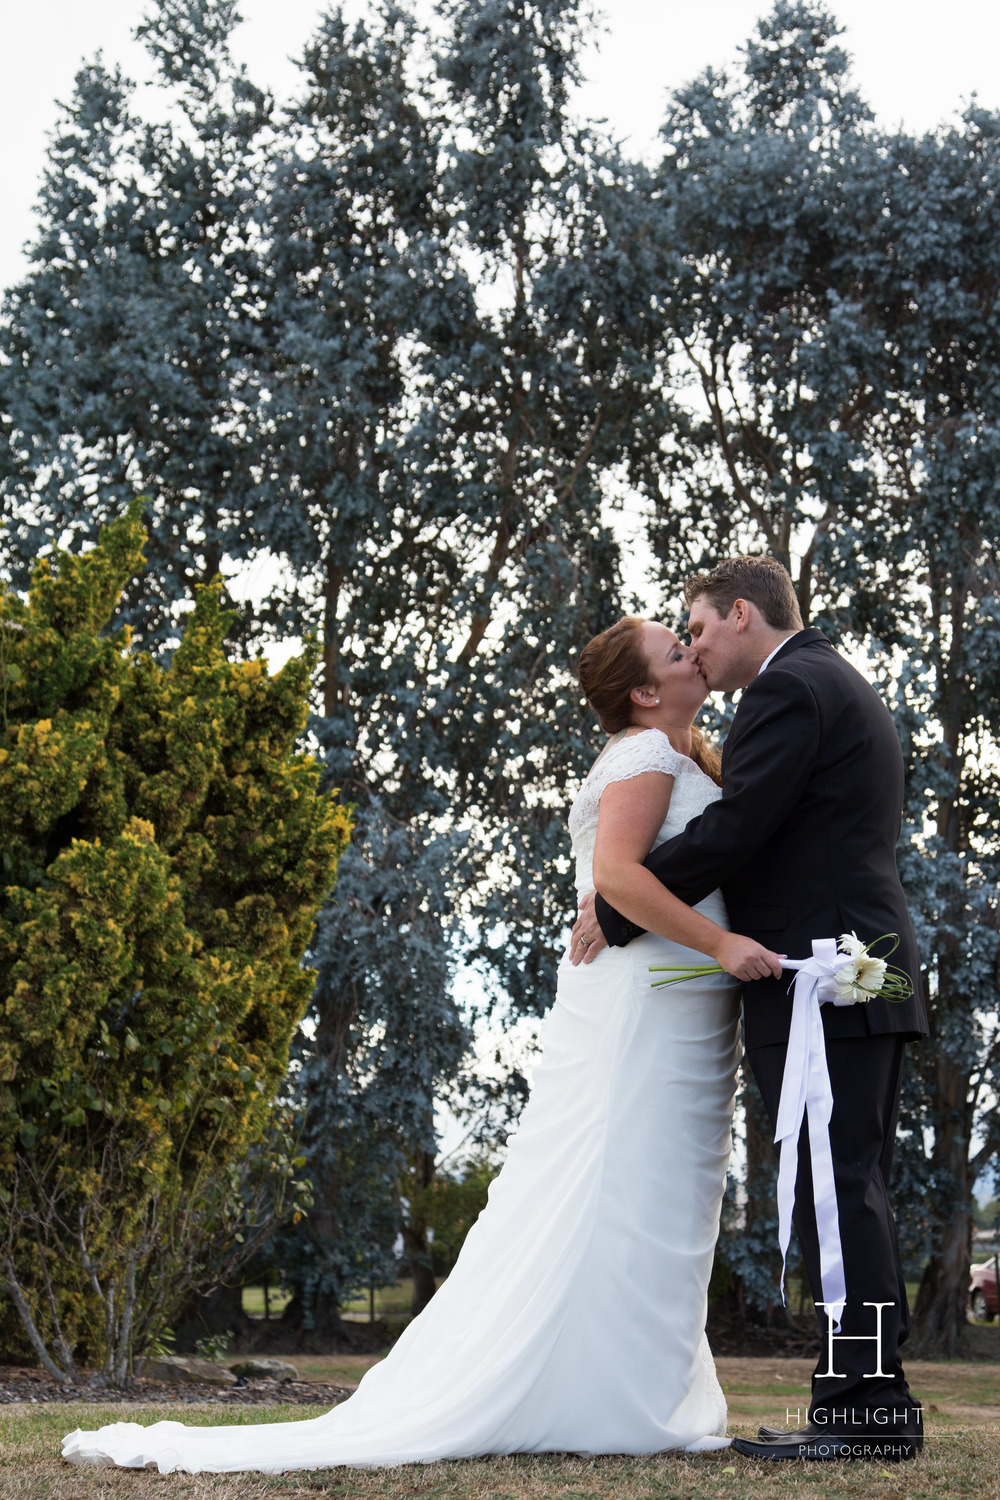 highlight_wedding_photography_masterton.jpg